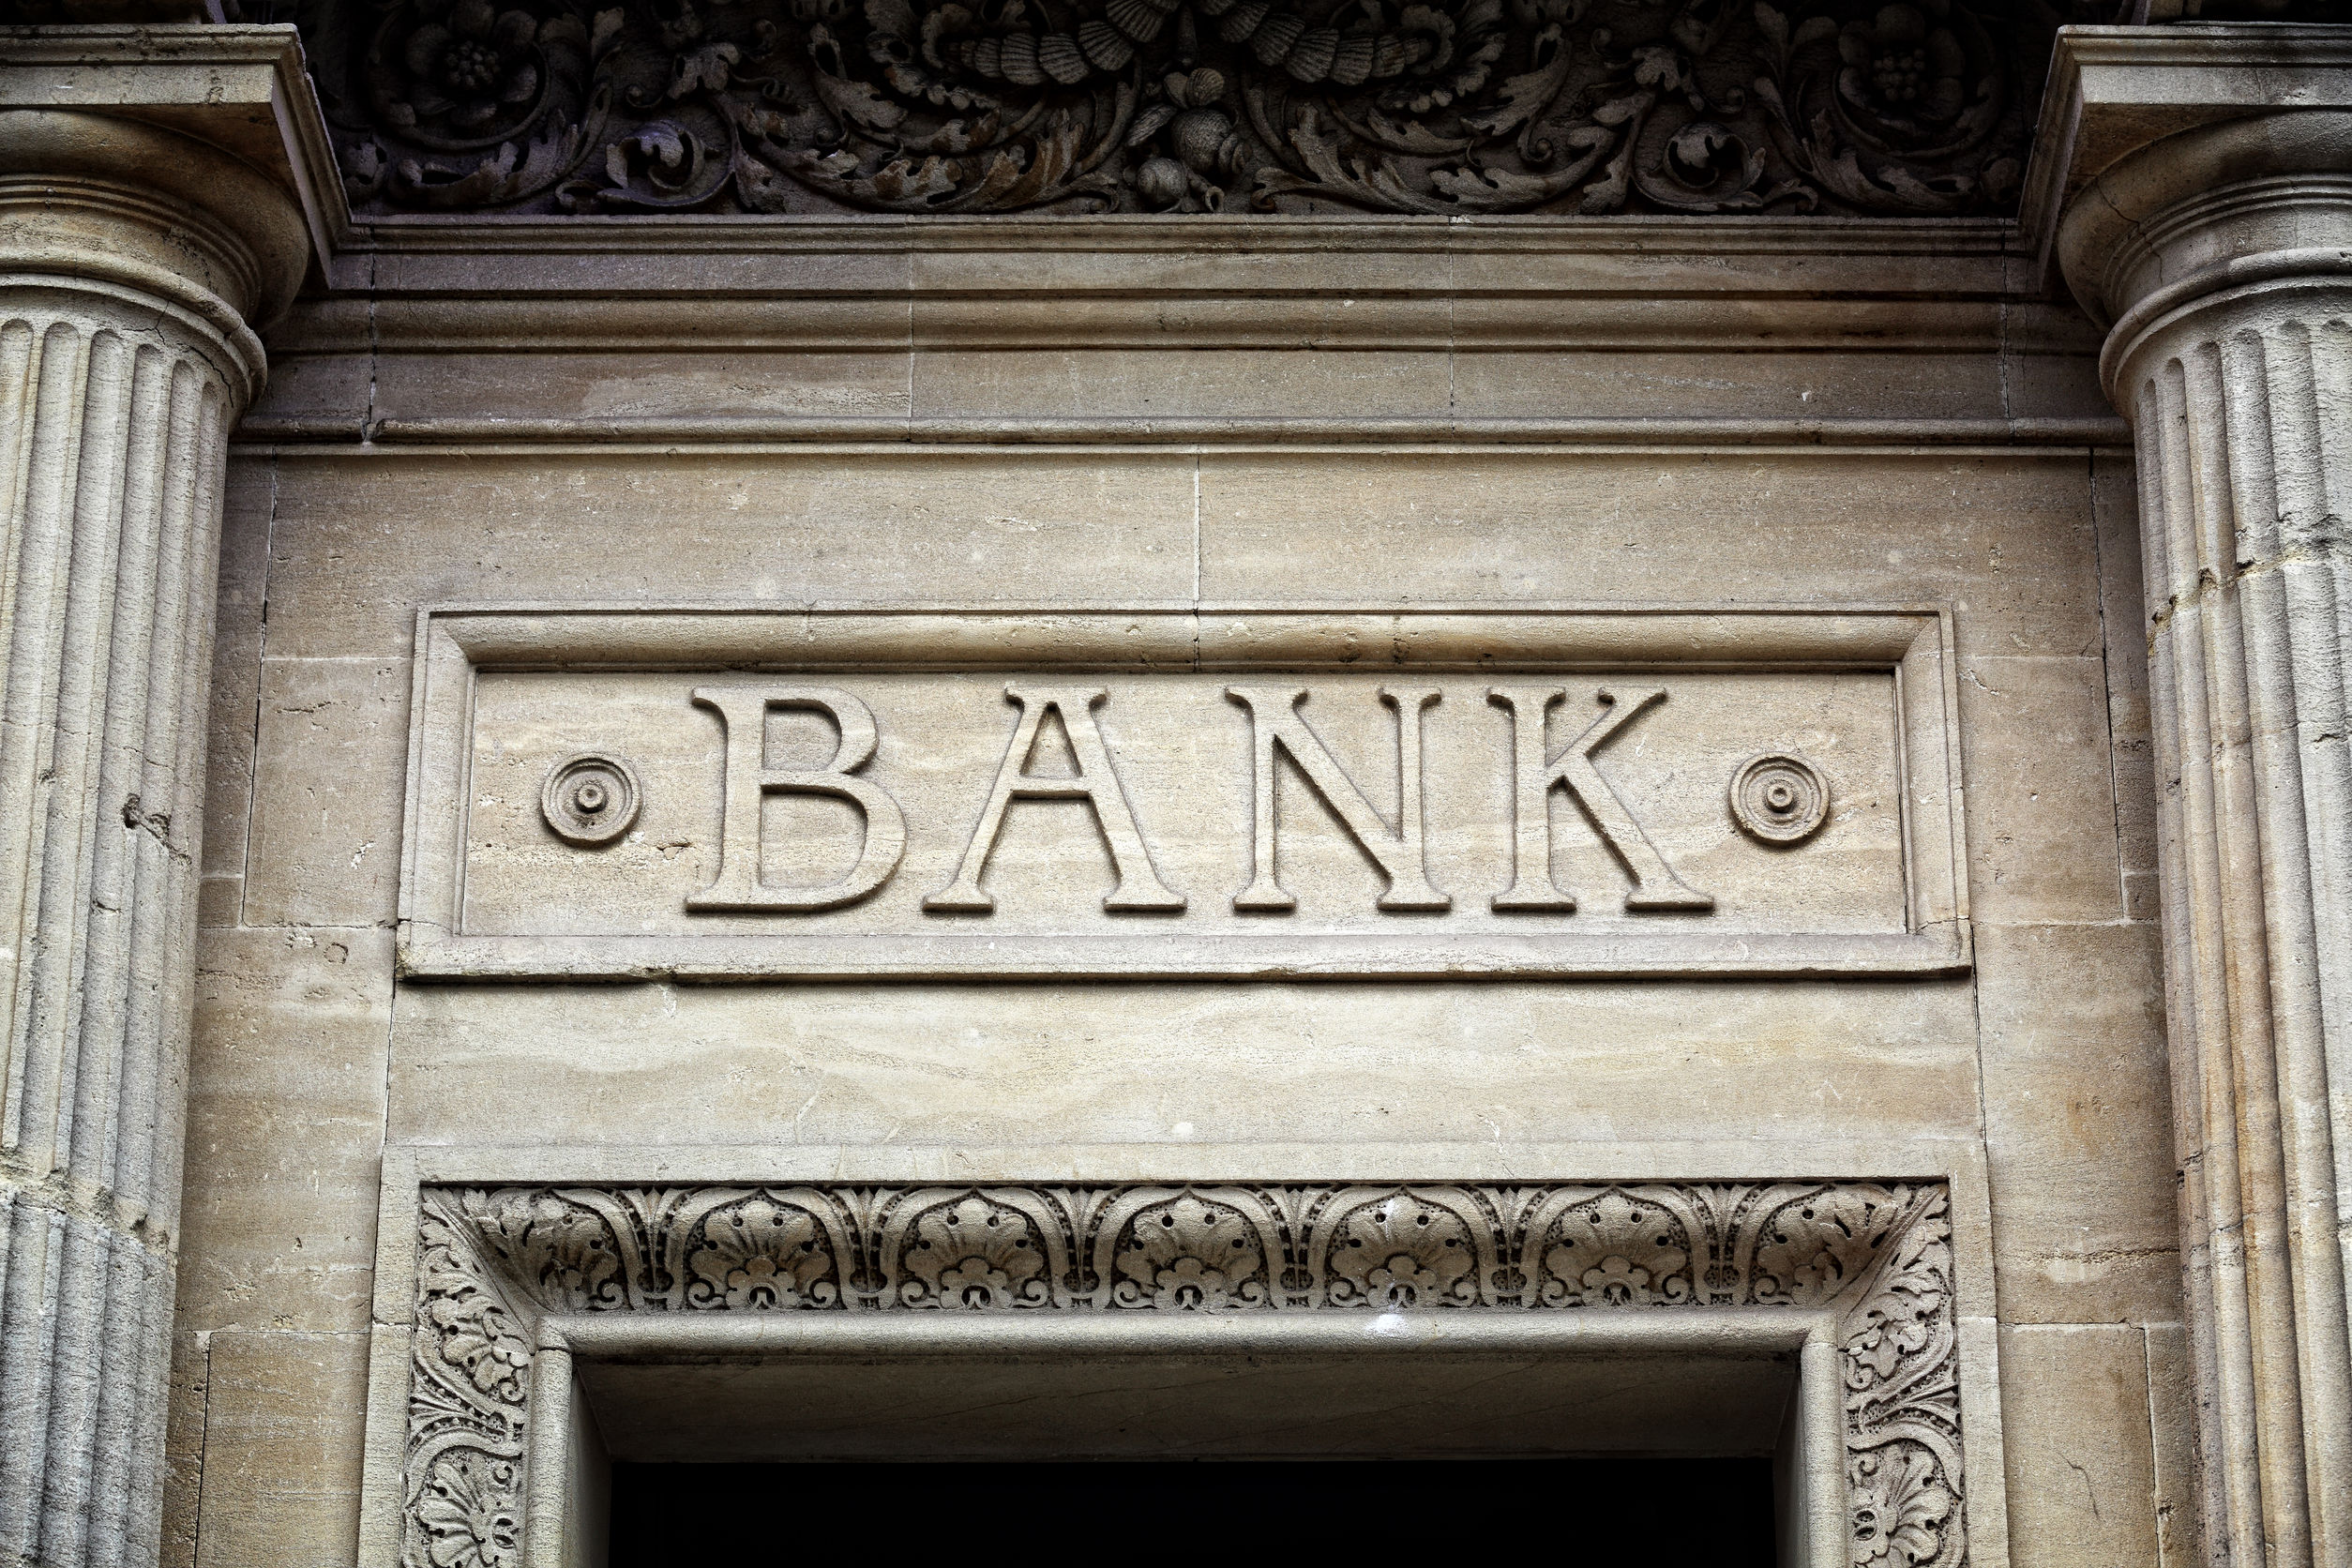 41818583 - old bank sign engraved in stone or concrete above the door of financial building concept for finance and business